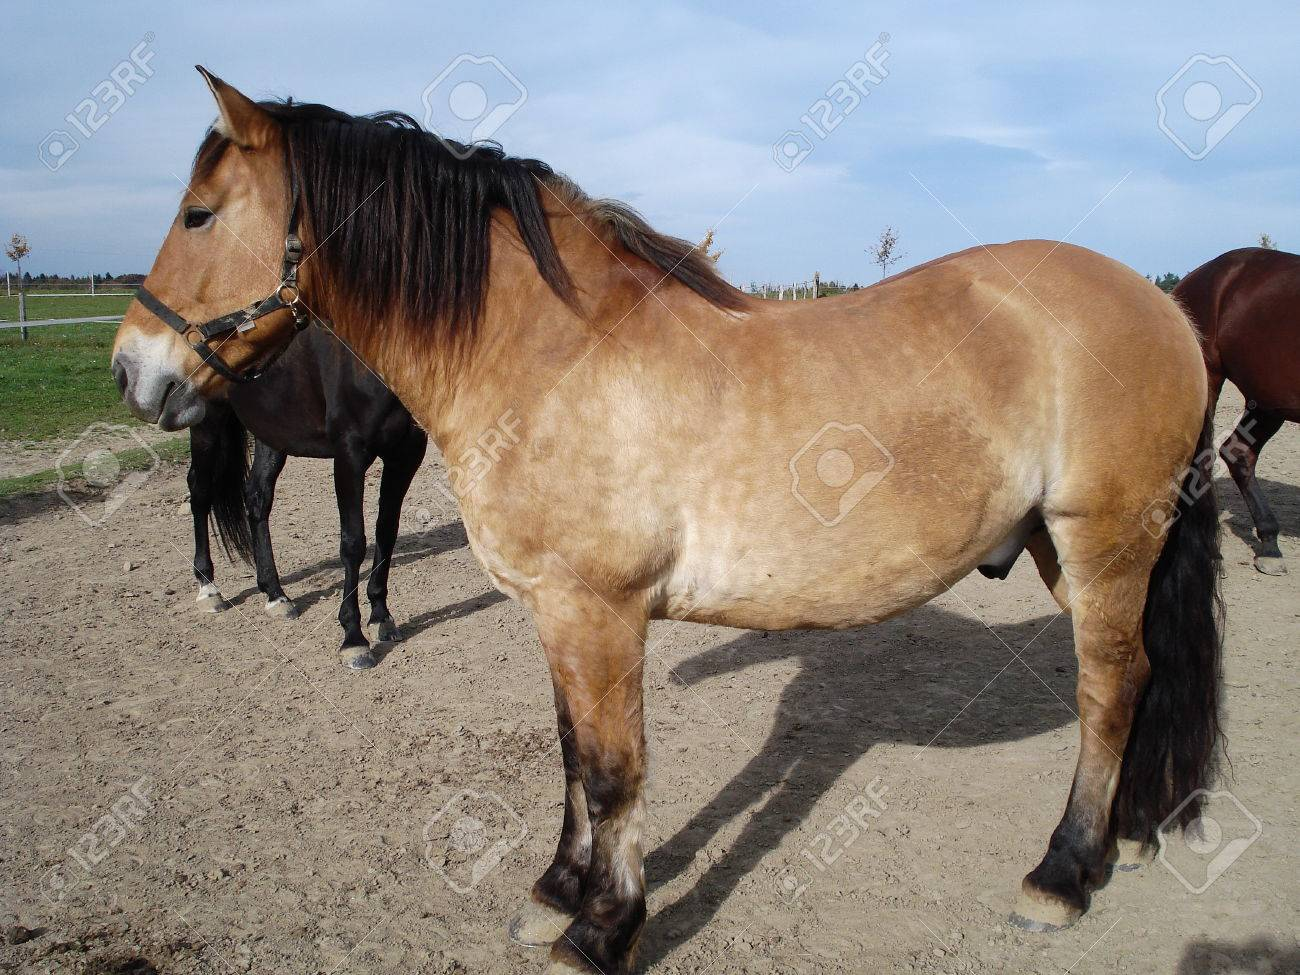 Beige Buckskin Horse In The Meadow Stock Photo Picture And Royalty Free Image Image 33383259